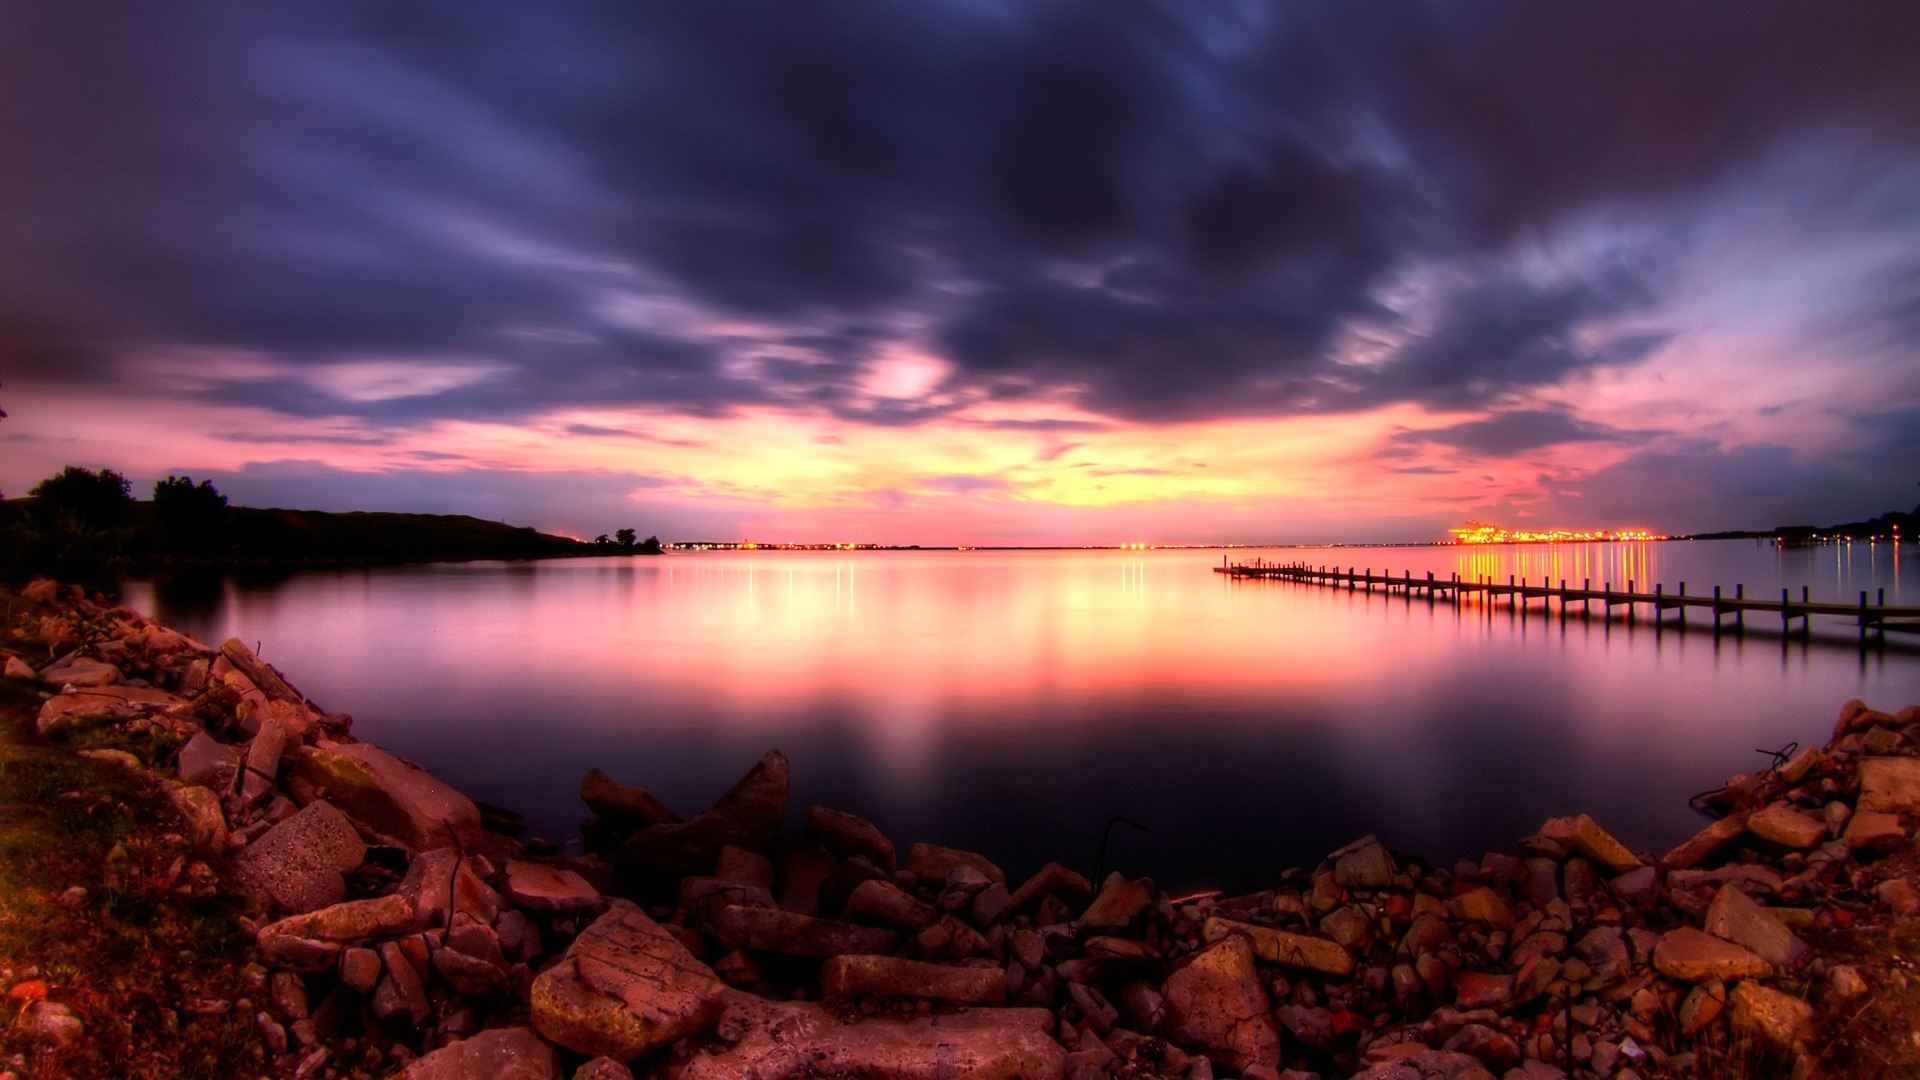 Hdr Sunrise And Sunset Landscape Wallpaper 04 Preview